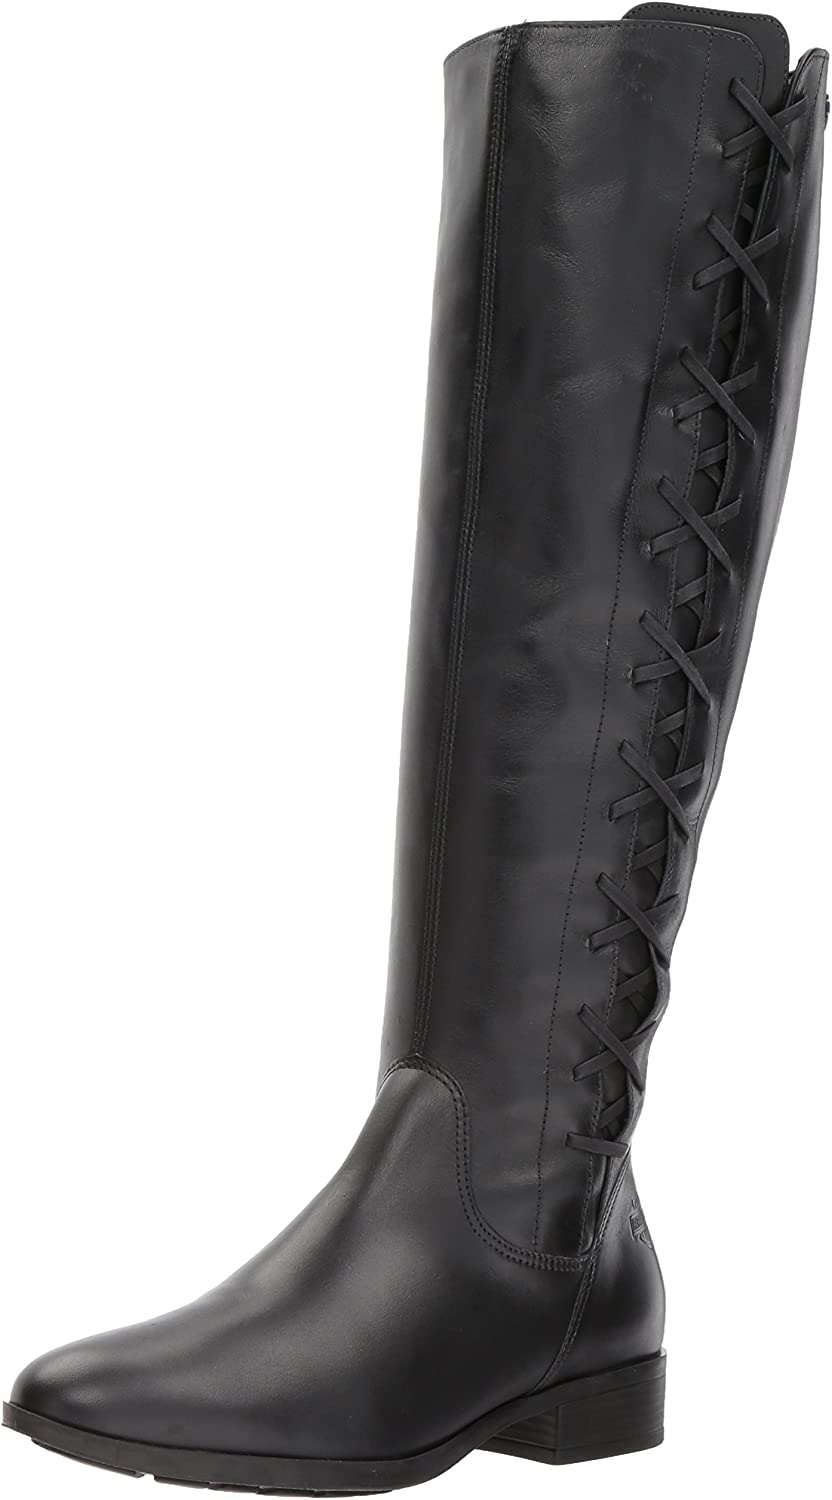 Harley-Davidson Womens Carrwood Work Boot